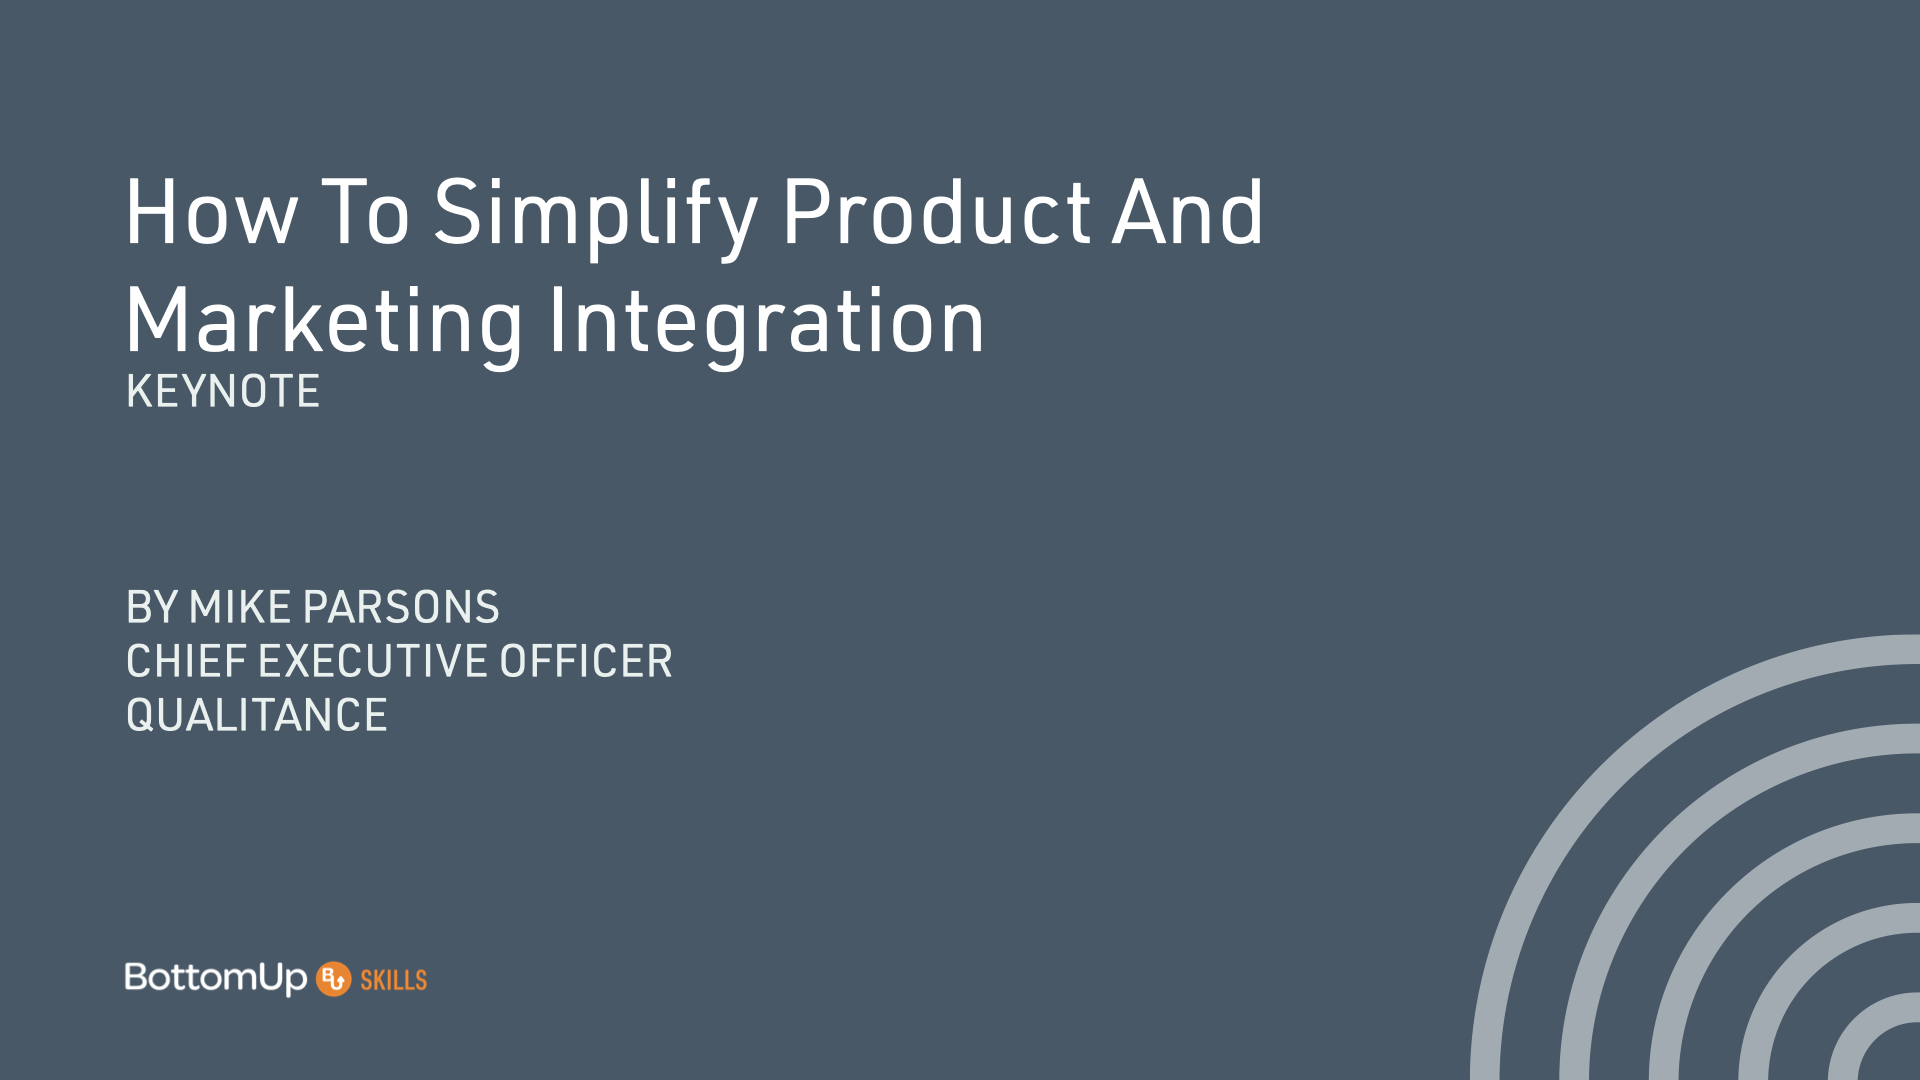 Product and marketing integration